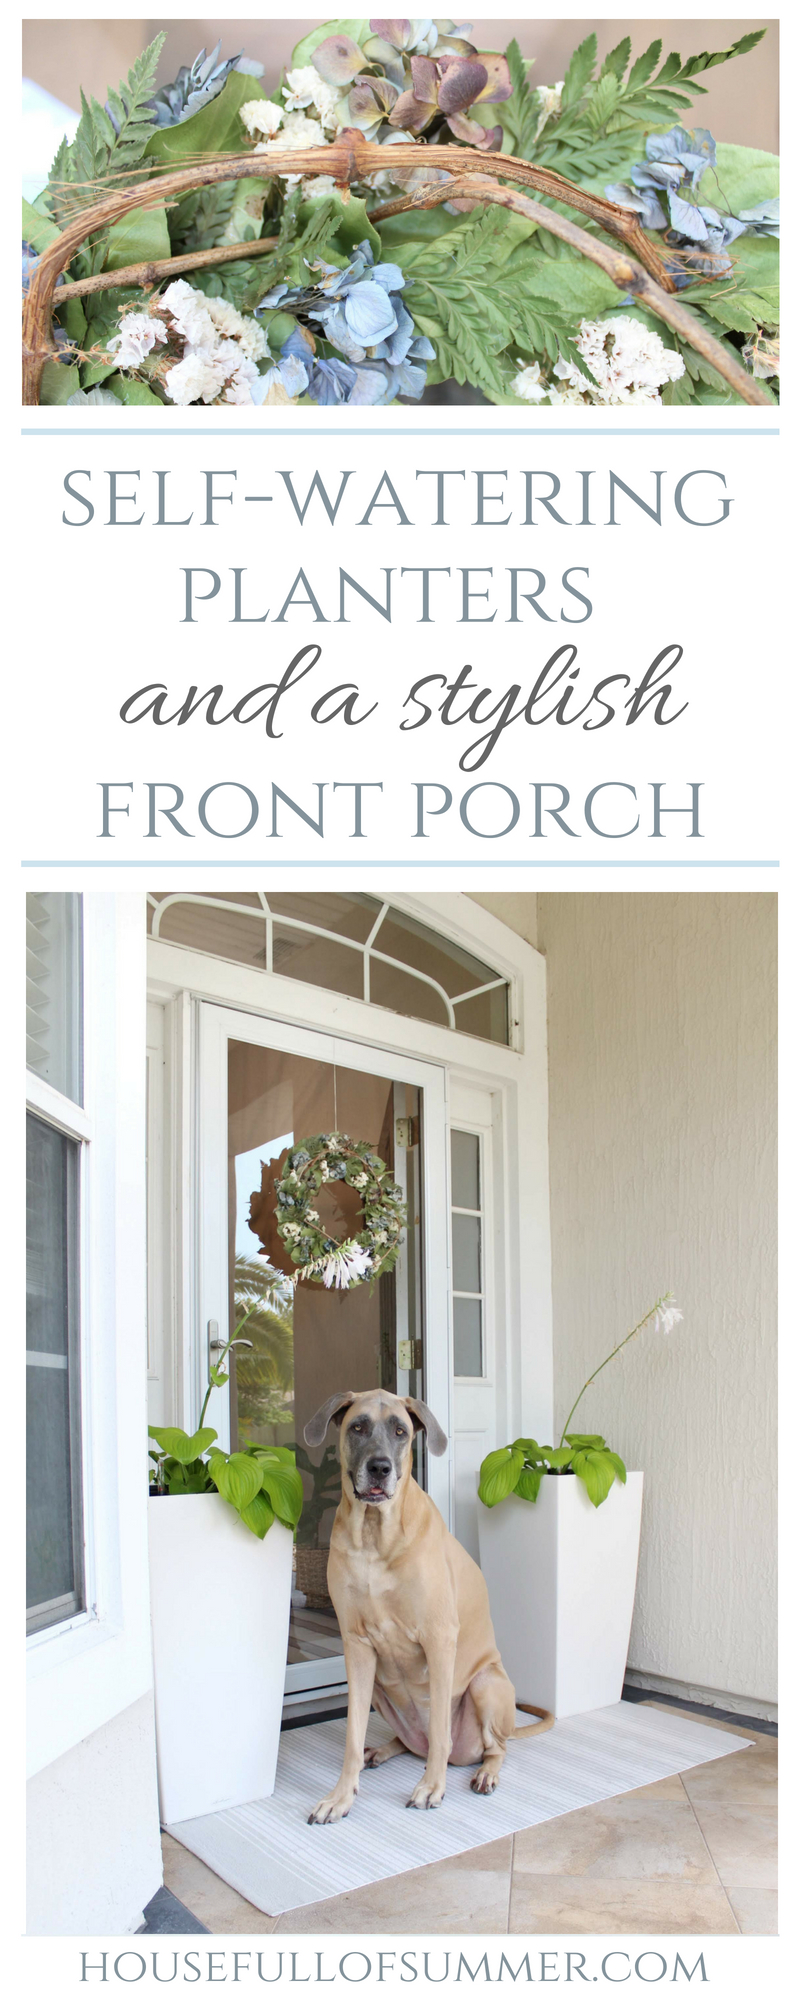 Self-Watering Planters and a Stylish Front Porch | House Full of Summer - front porch decor, white tall planters, summer front porch, summer decor, coastal home exterior, white porch, Florida home #sp